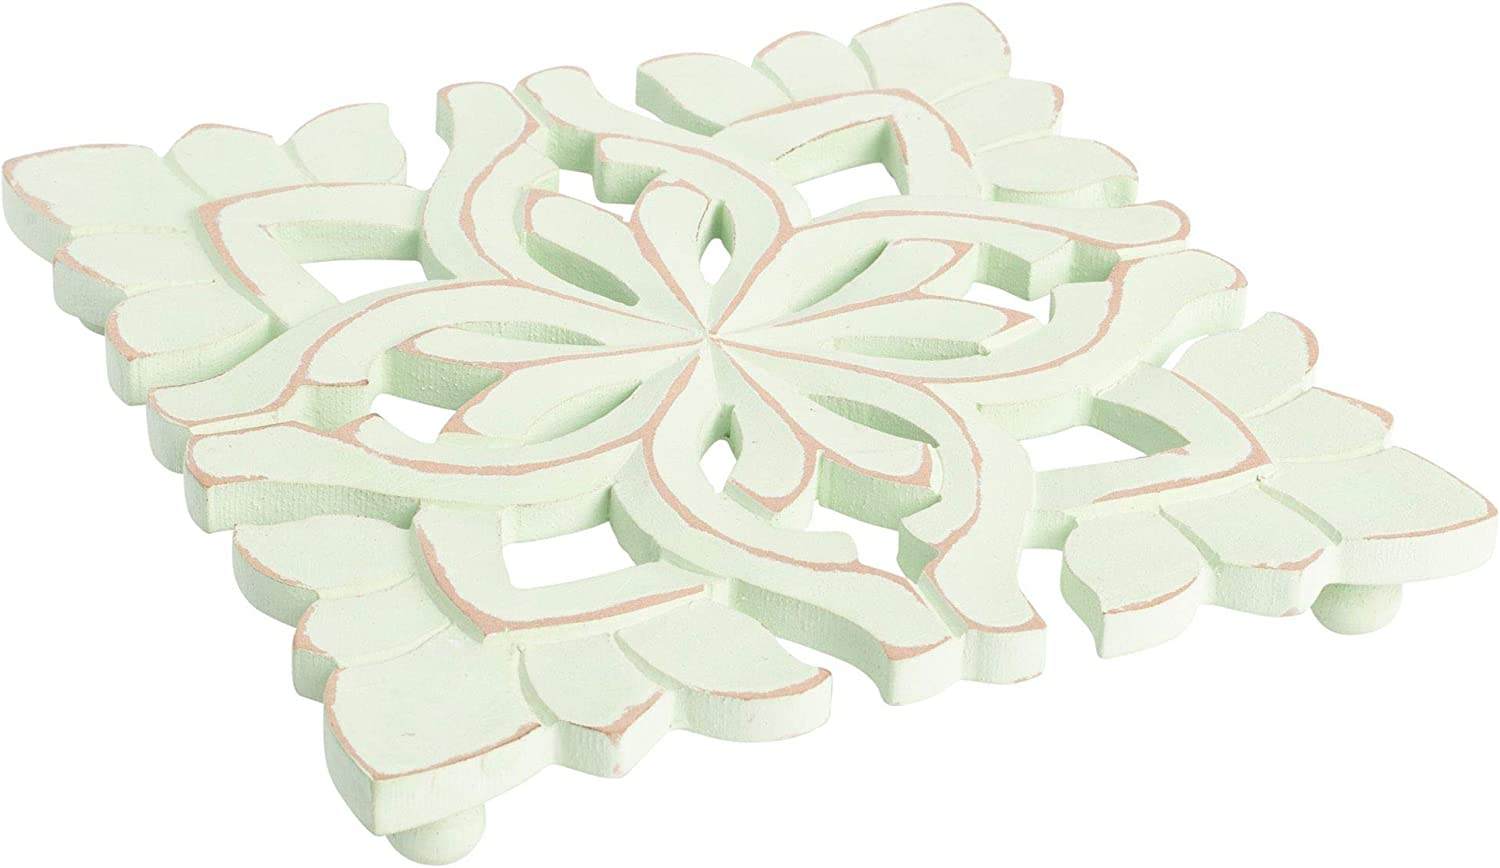 "Farmhouse Decor Natural Wood Trivet for Heavy Cast Iron, Dutch Ovens and Teapots - 7"" Square (Carved Blossom Sage Green)"